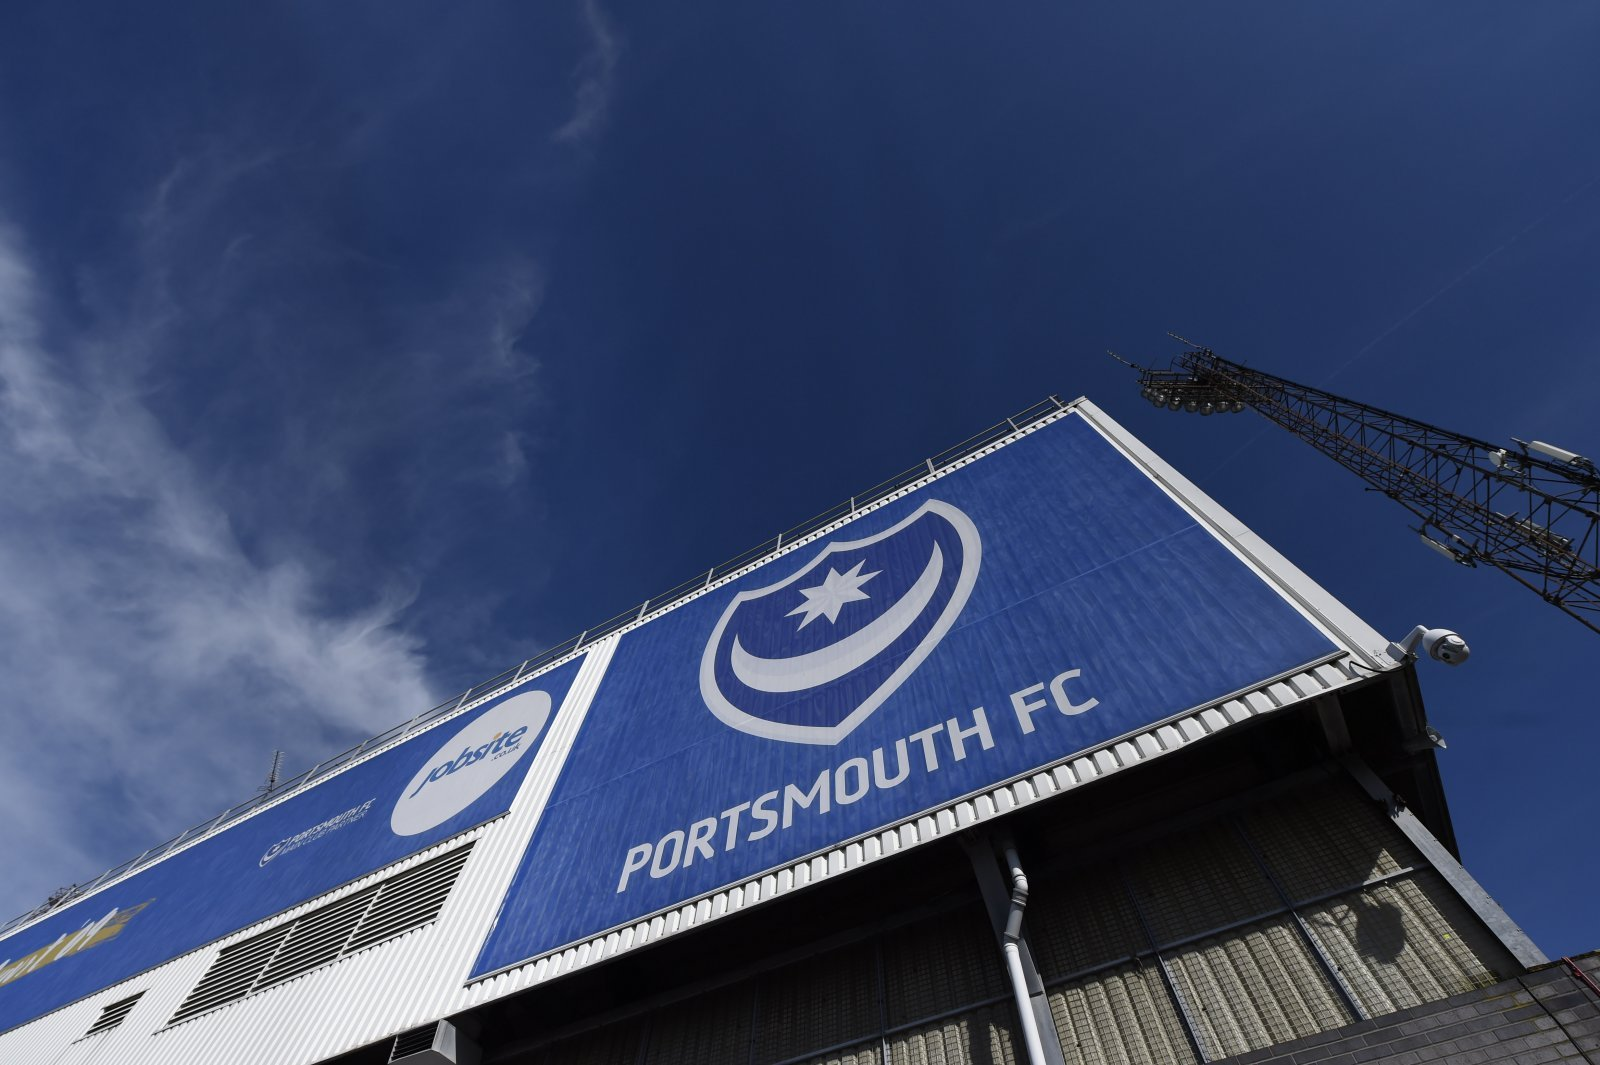 Portsmouth team news: Andre Green and Dion Donohue unavailable